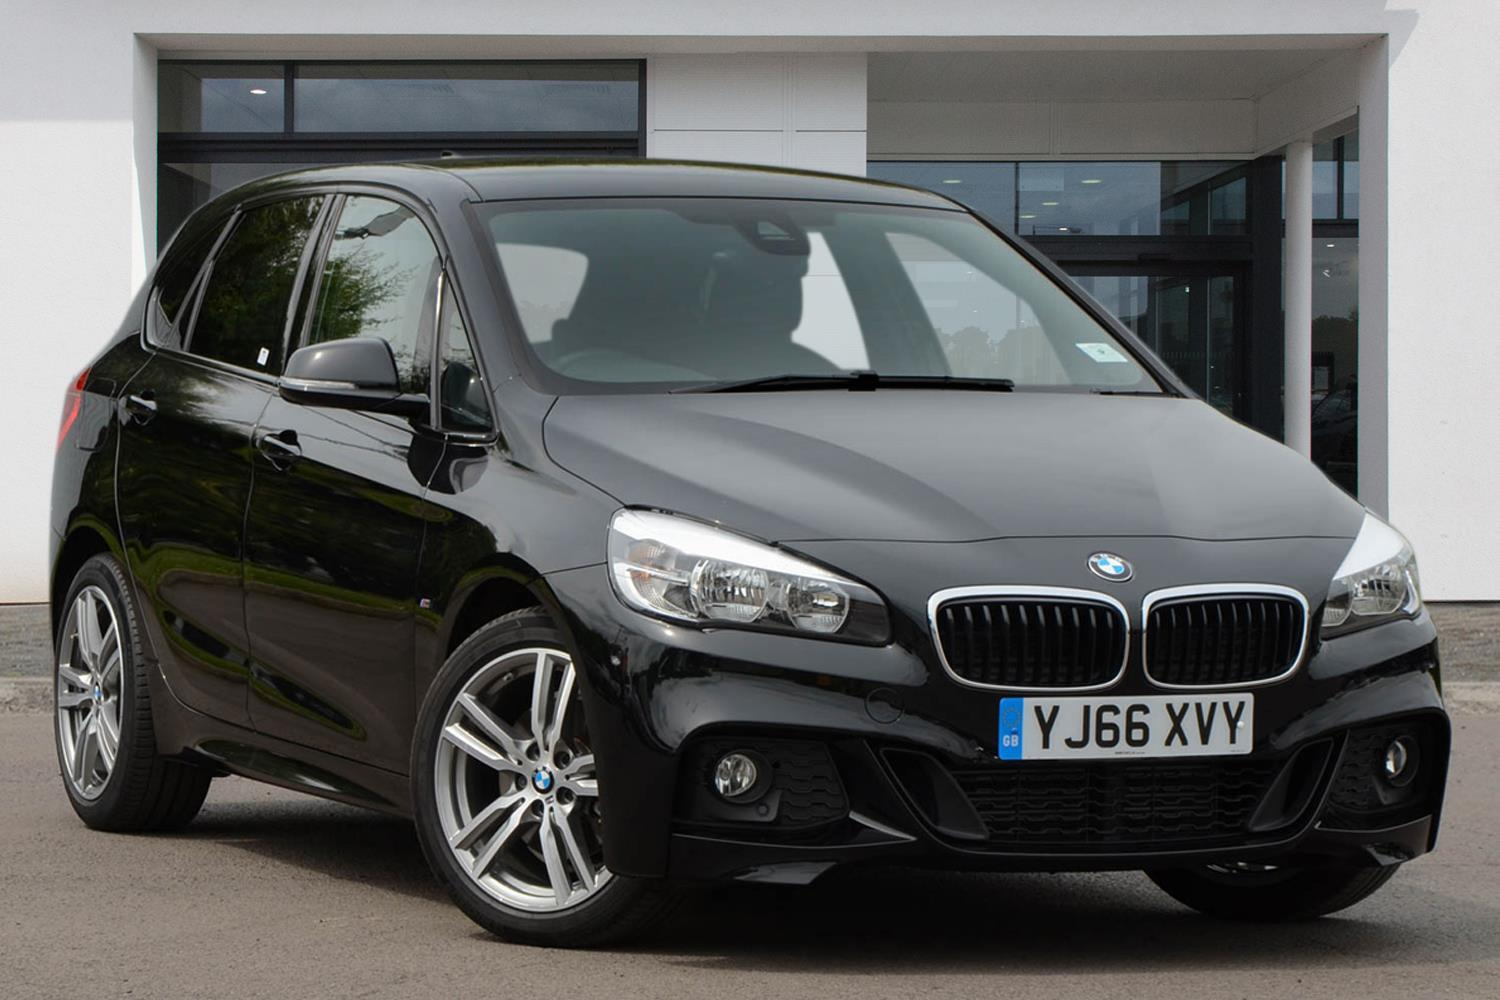 BMW 2 Series Active Tourer 5-Door YJ66XVY - Image 4